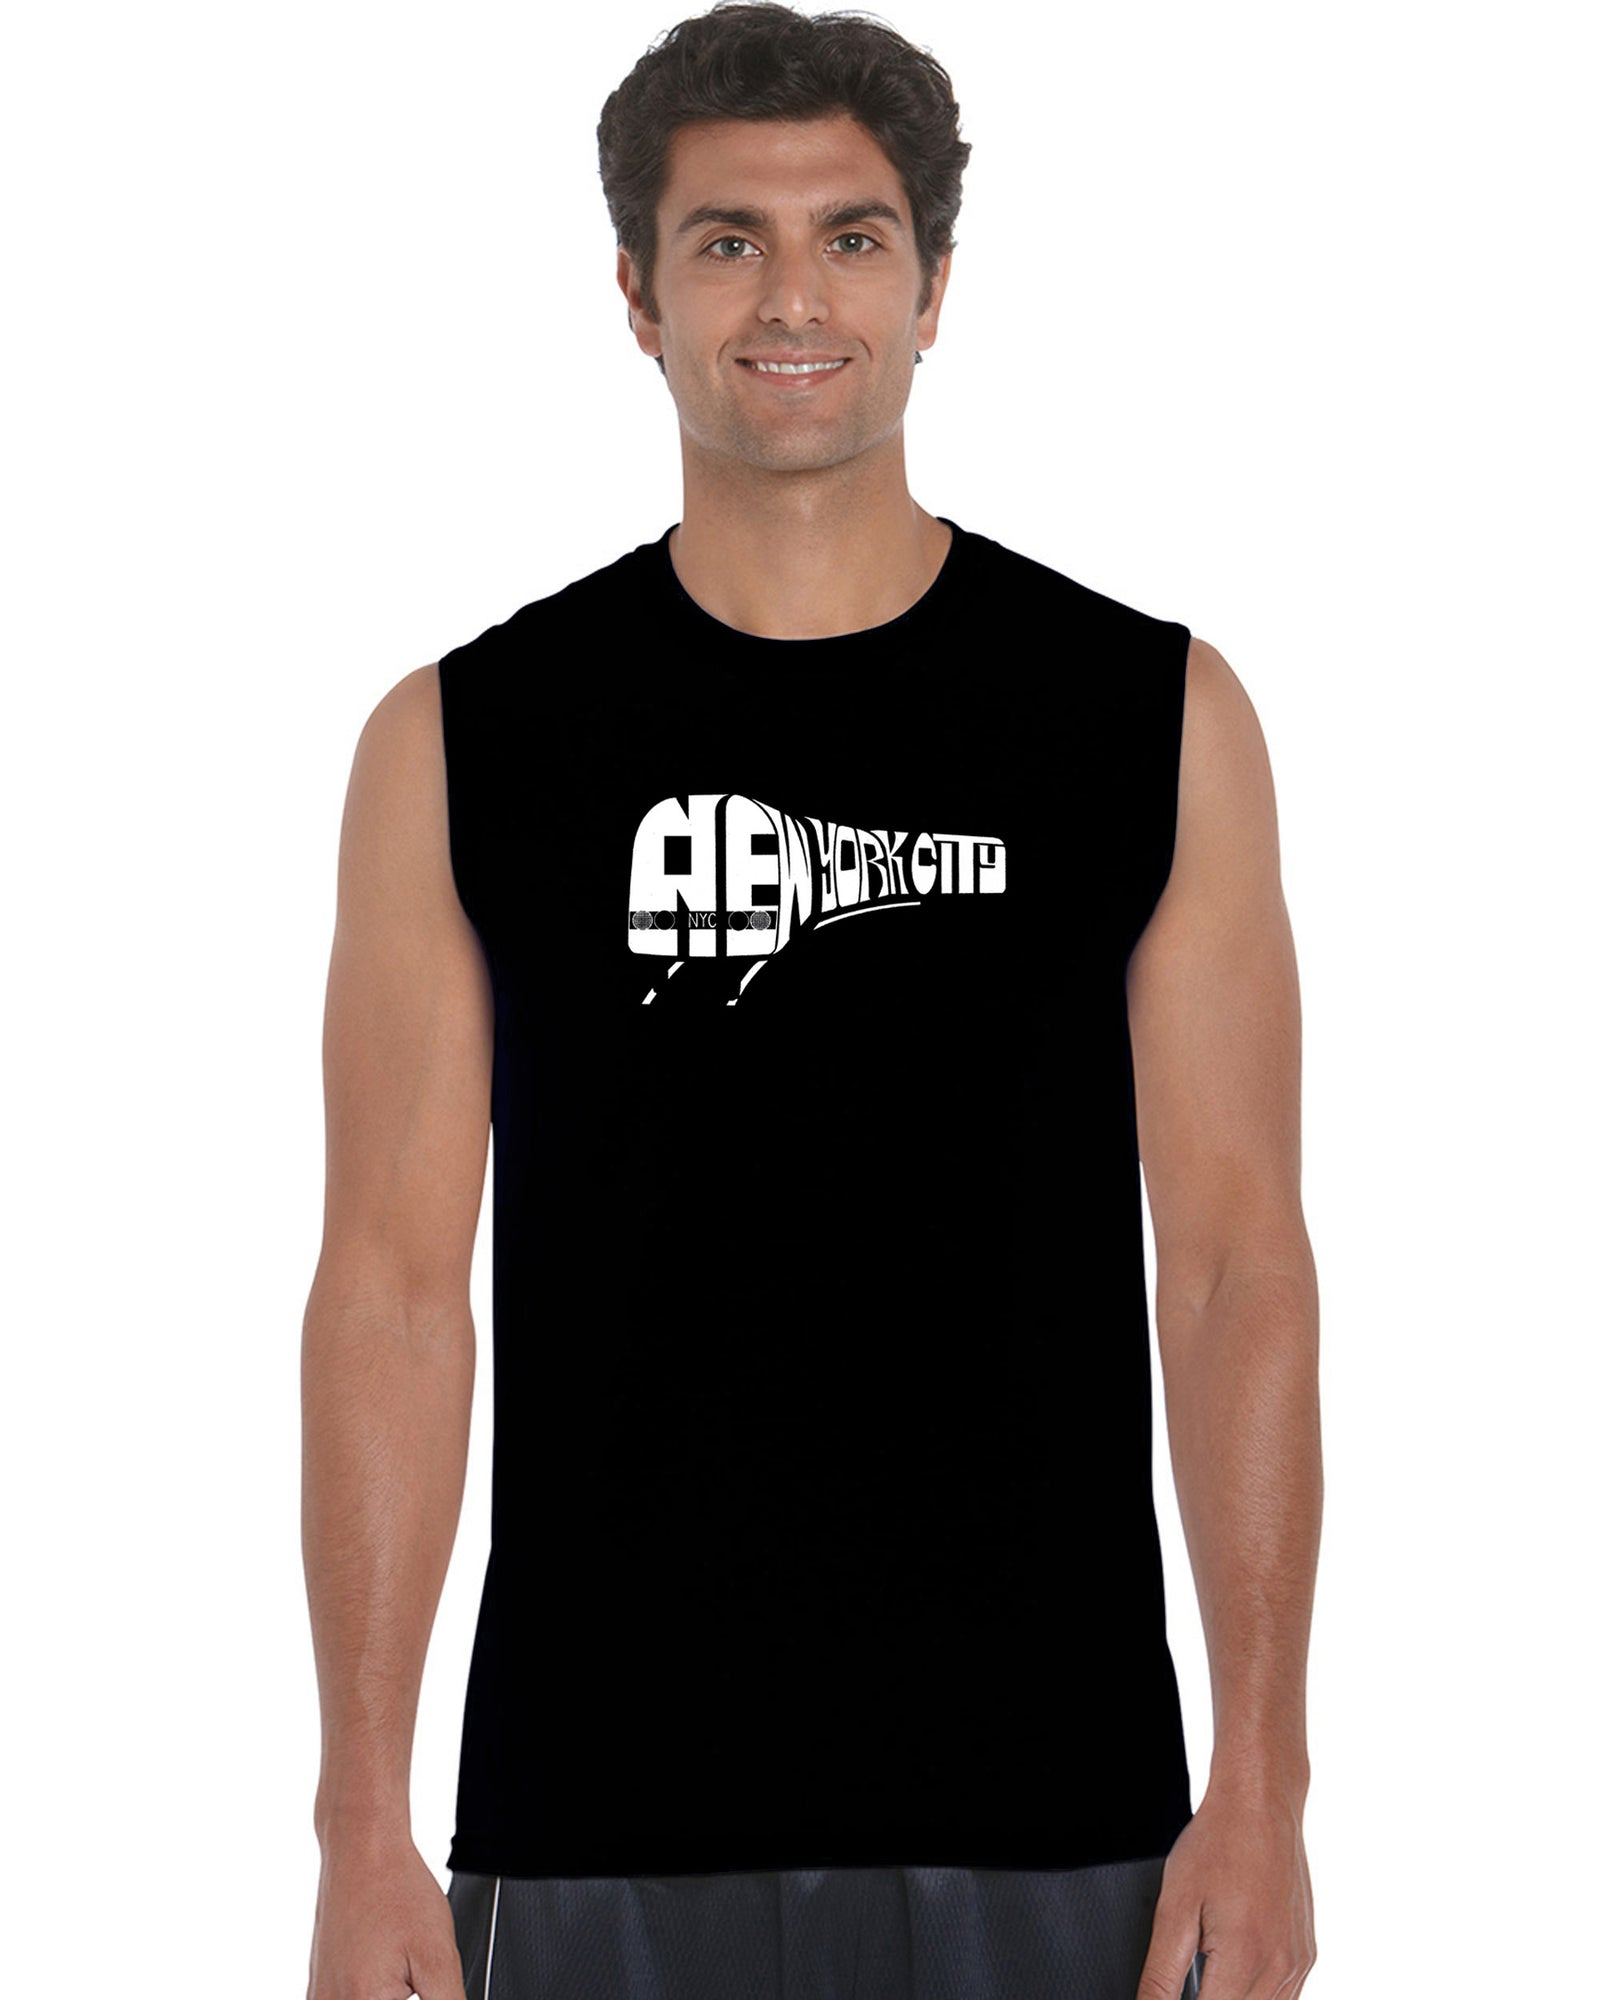 Men's Sleeveless T-shirt - NY SUBWAY